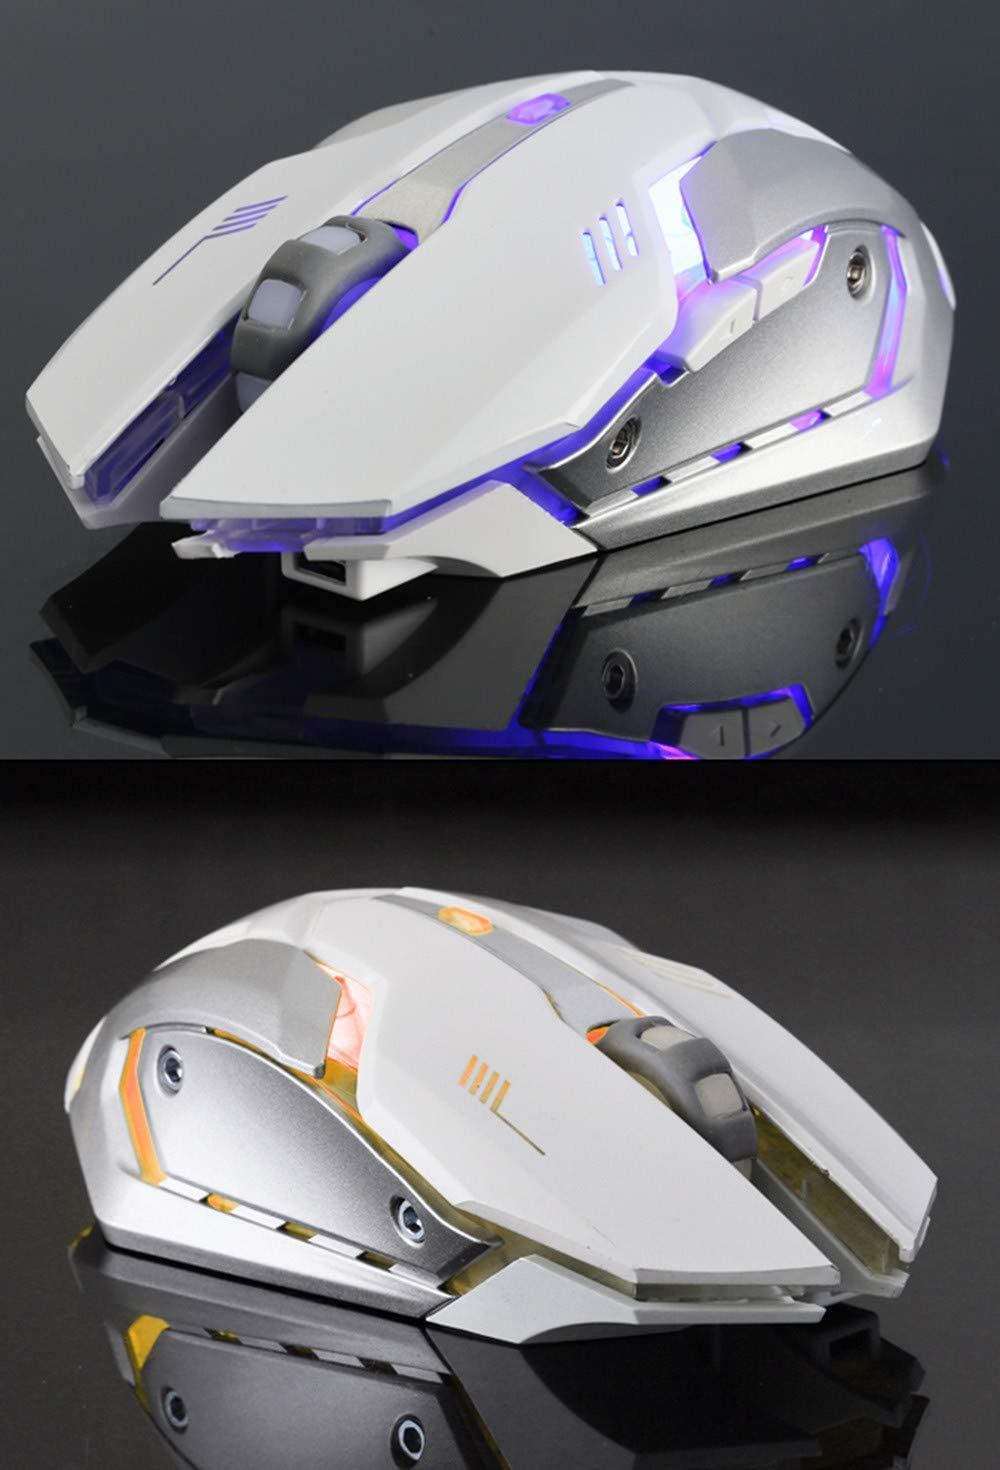 OhradWord Gaming Mouse Wireless Comfortable Grip Ergonomic Optical PC Computer Gaming Mice,Rechargeable Silent LED Backlit USB Optical Ergonomic Gaming Mouse